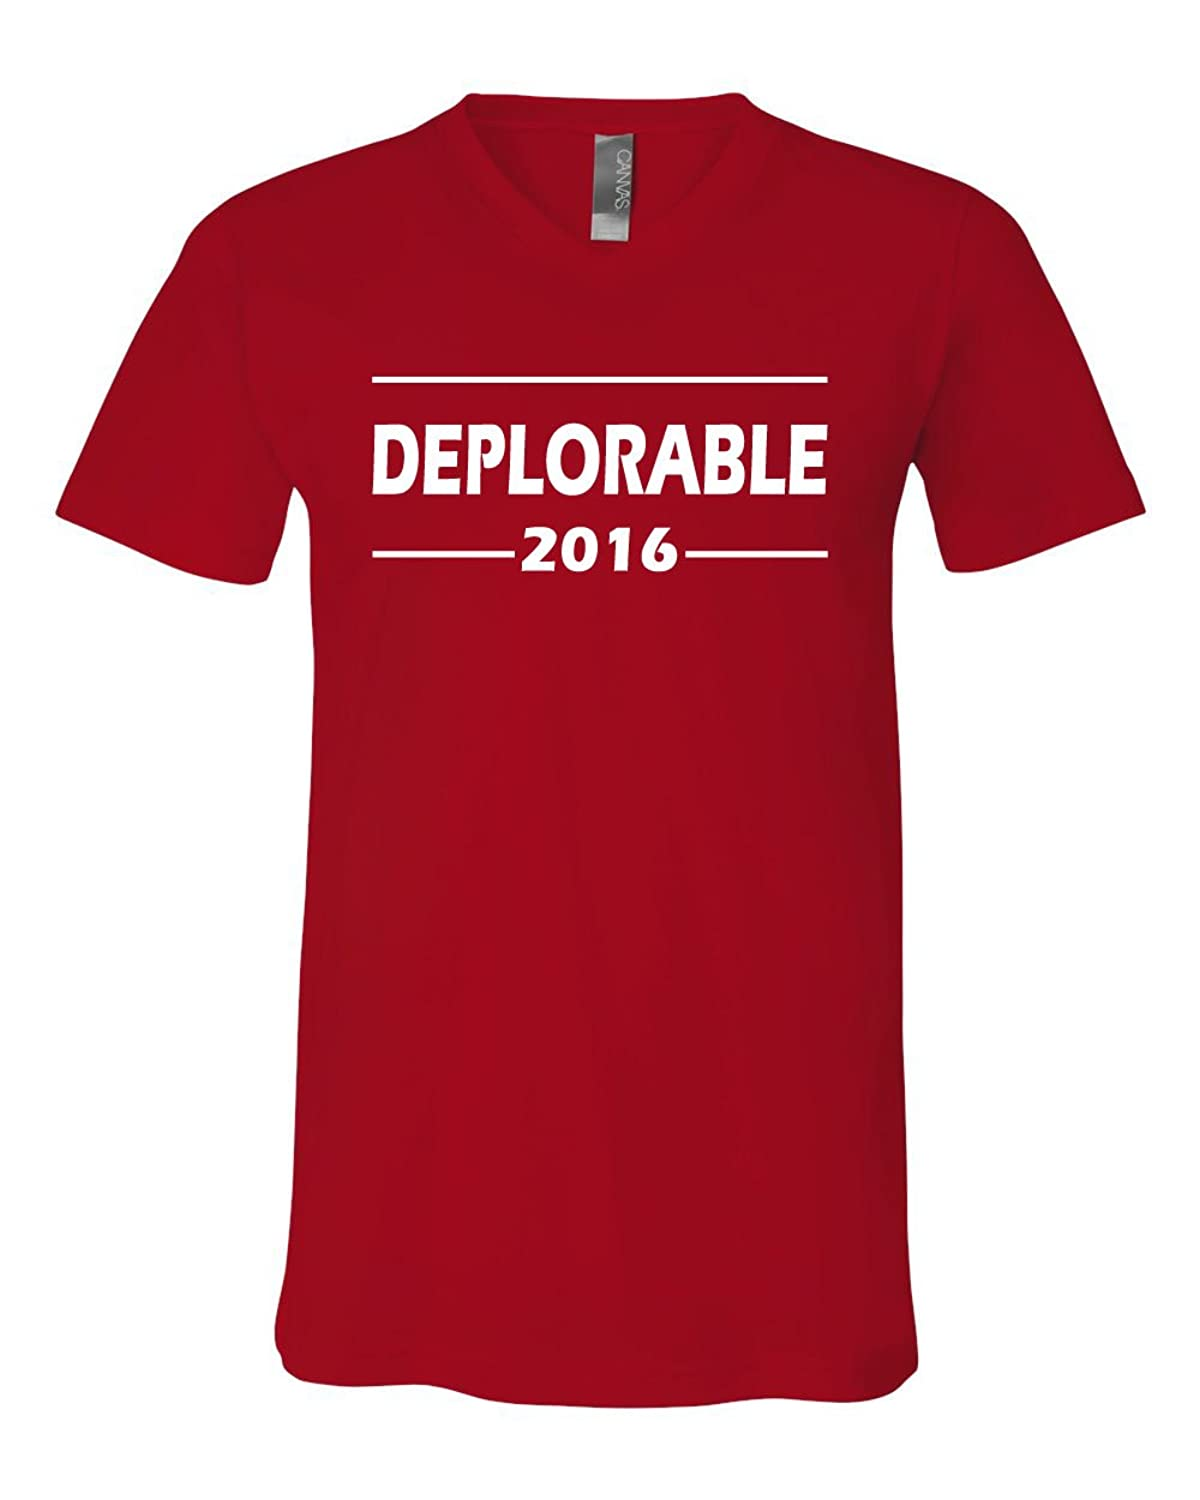 Deplorable 2016 Donald Trump V-Neck T-Shirt The Deplorables Tee